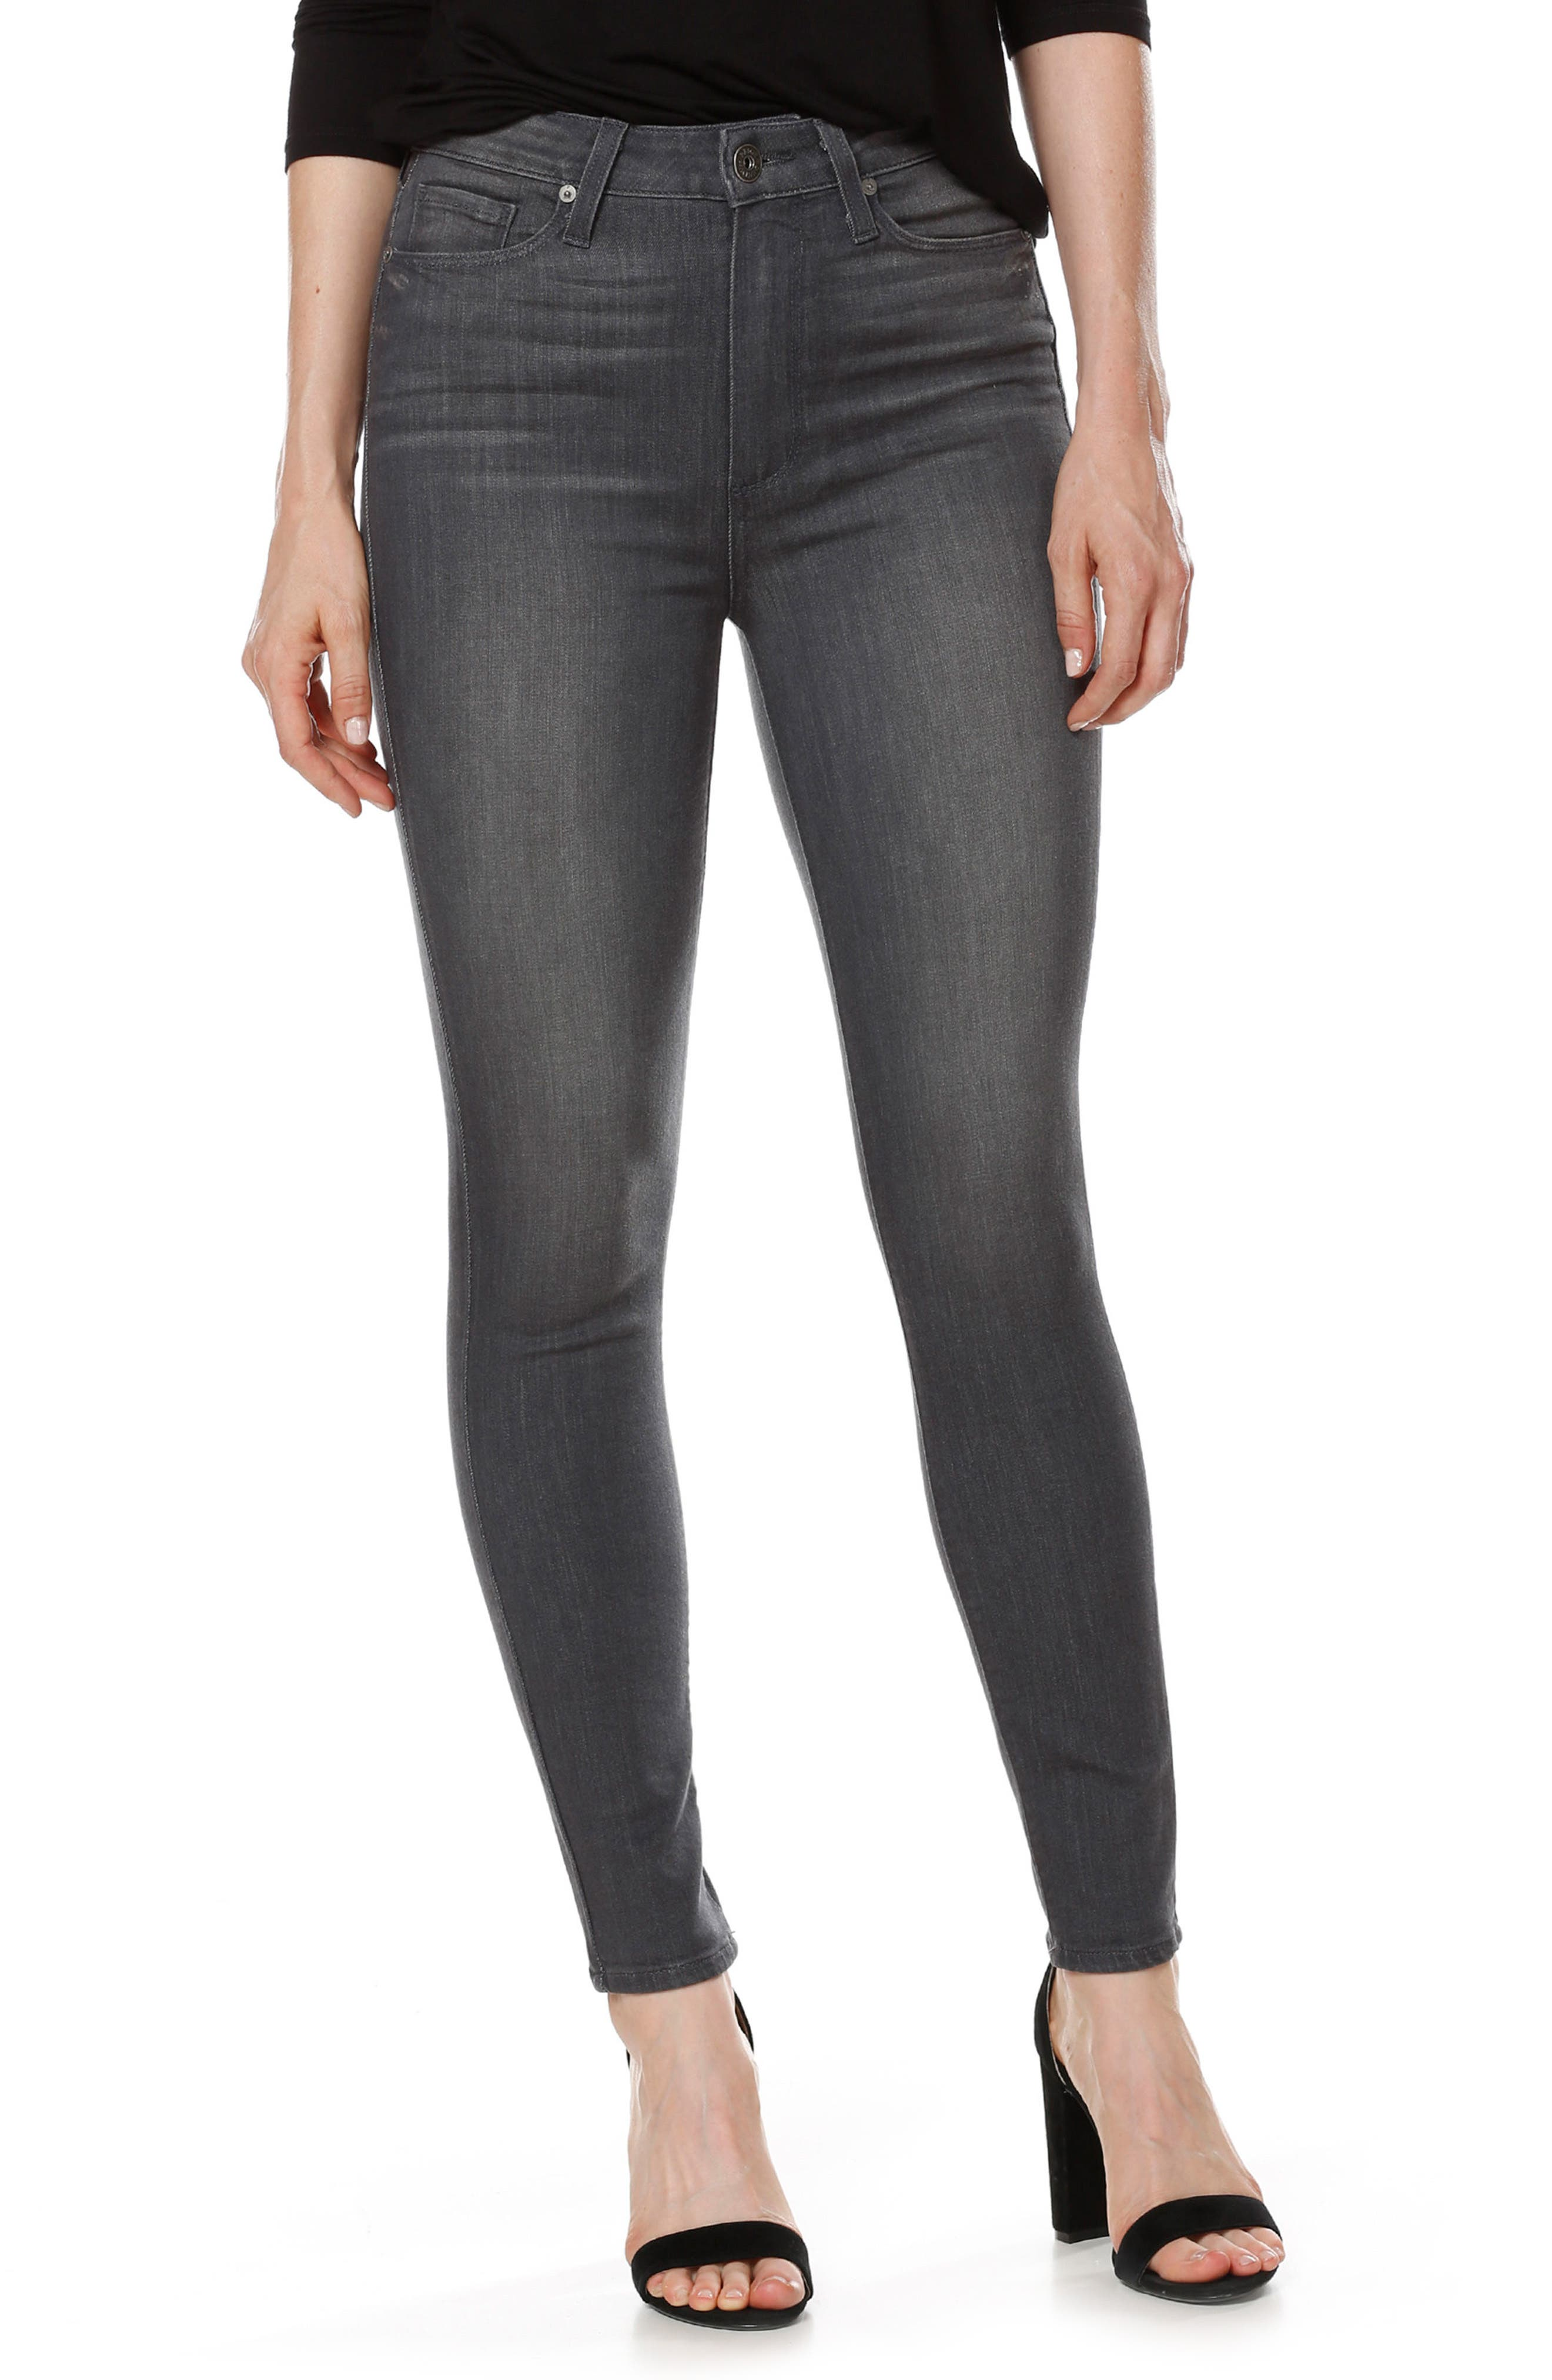 Transcend - Margot High Waist Ankle Ultra Skinny Jeans,                             Main thumbnail 1, color,                             Summit Grey